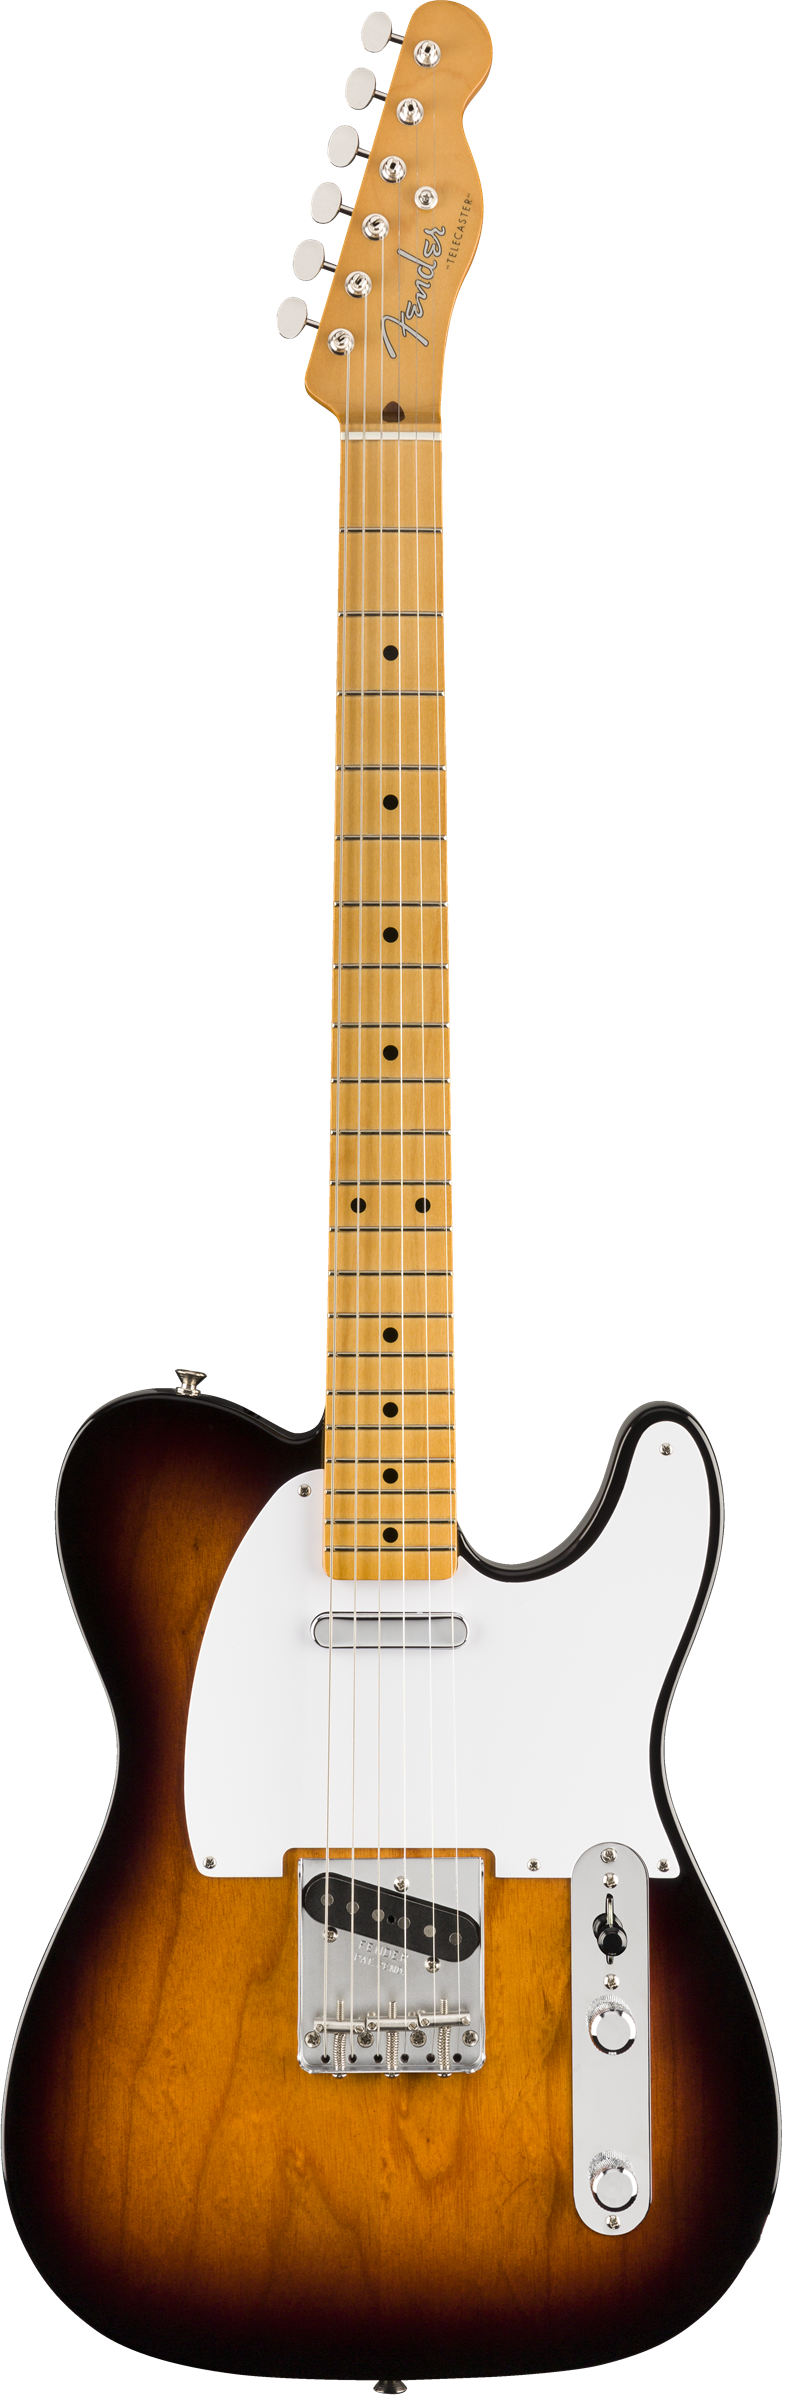 Fender Vintera 50s Telecaster 2 Colour Sunburst MN - Regent Sounds